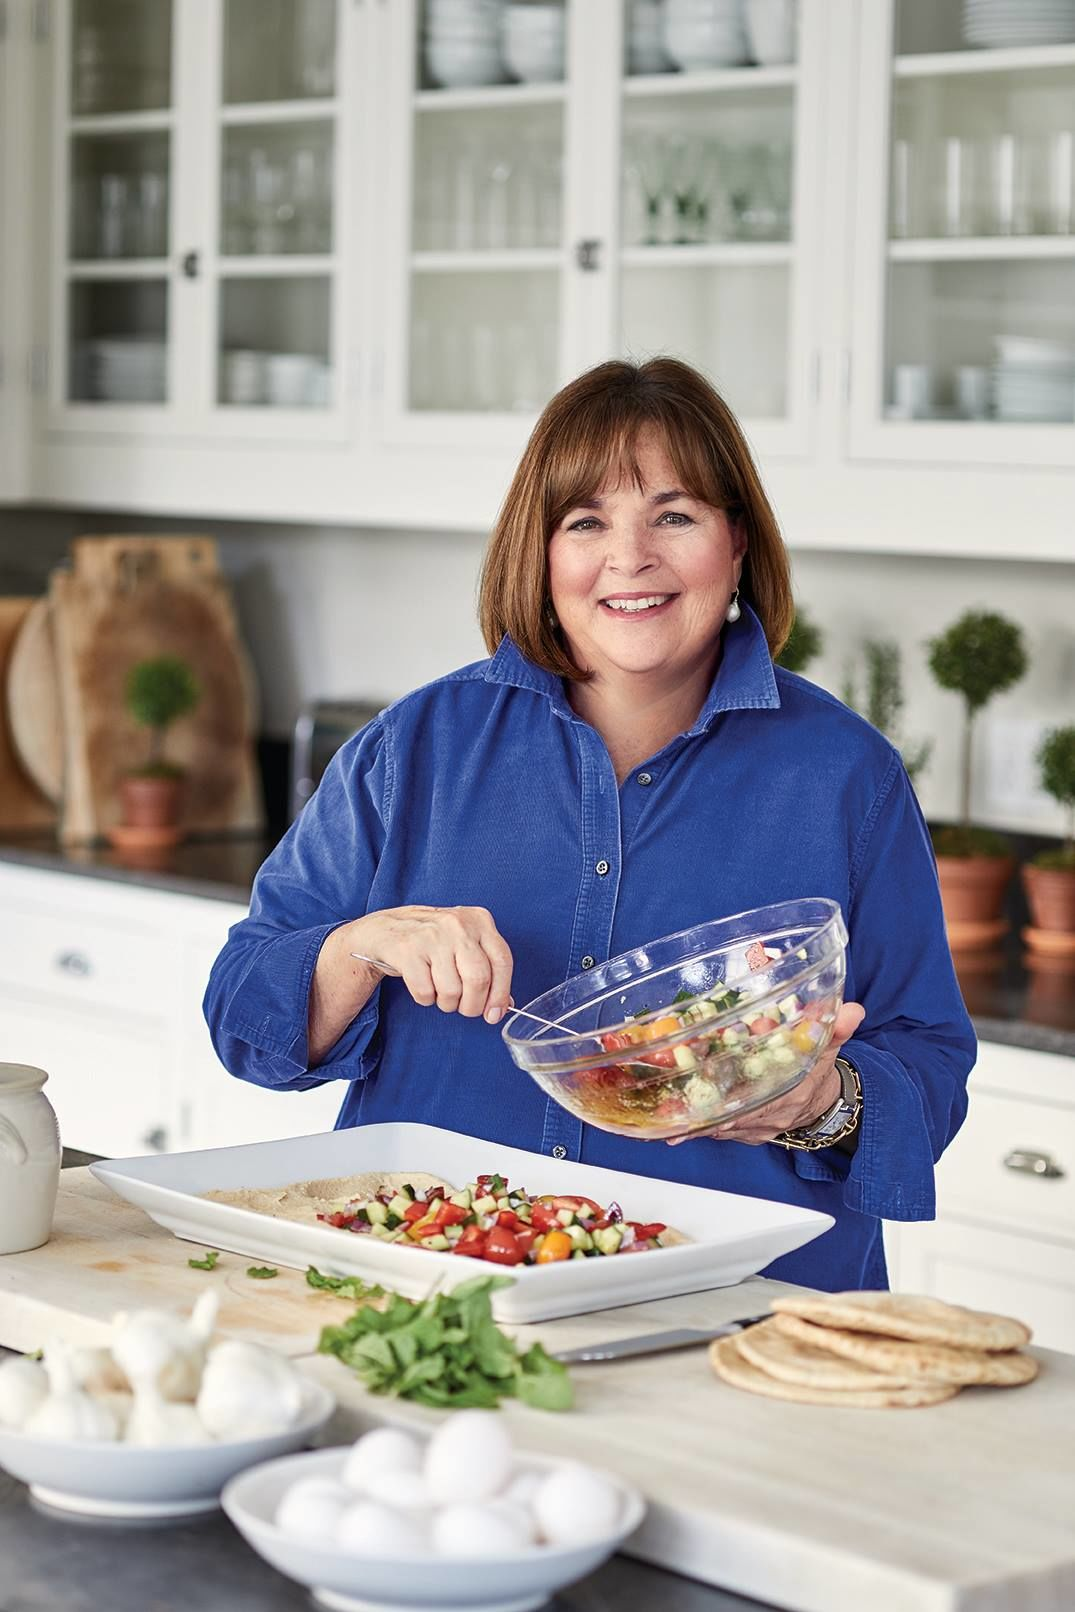 WATCH: Hot or Not? Ina Garten Weighs in on Controversial Food Trends